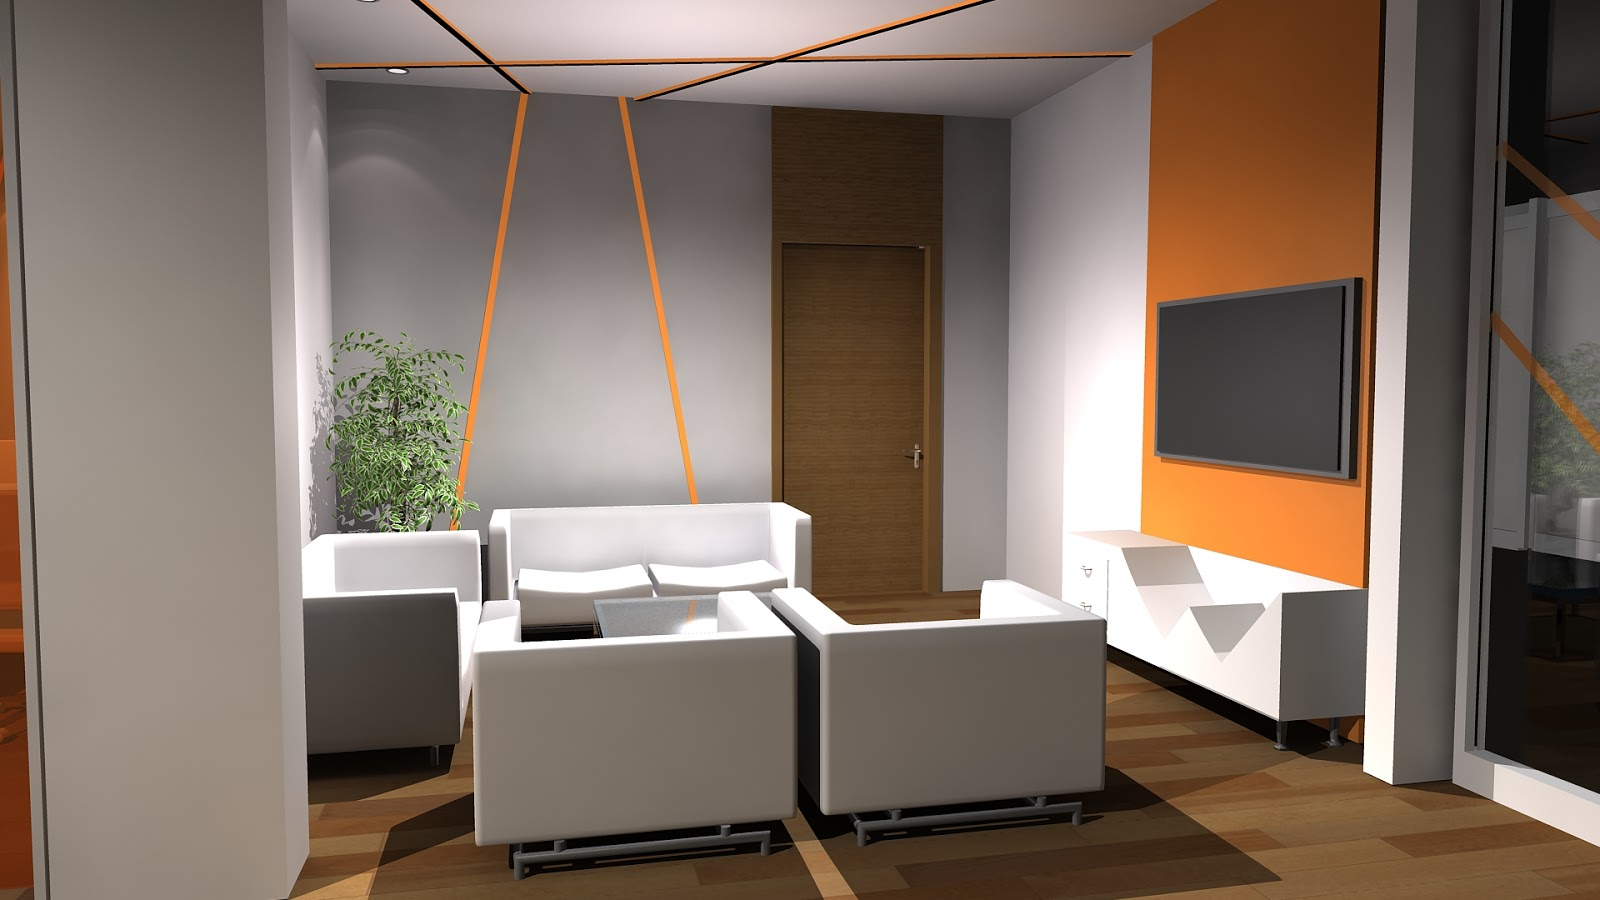 Sajid designer interior design office 3ds max for Decoration 3ds max